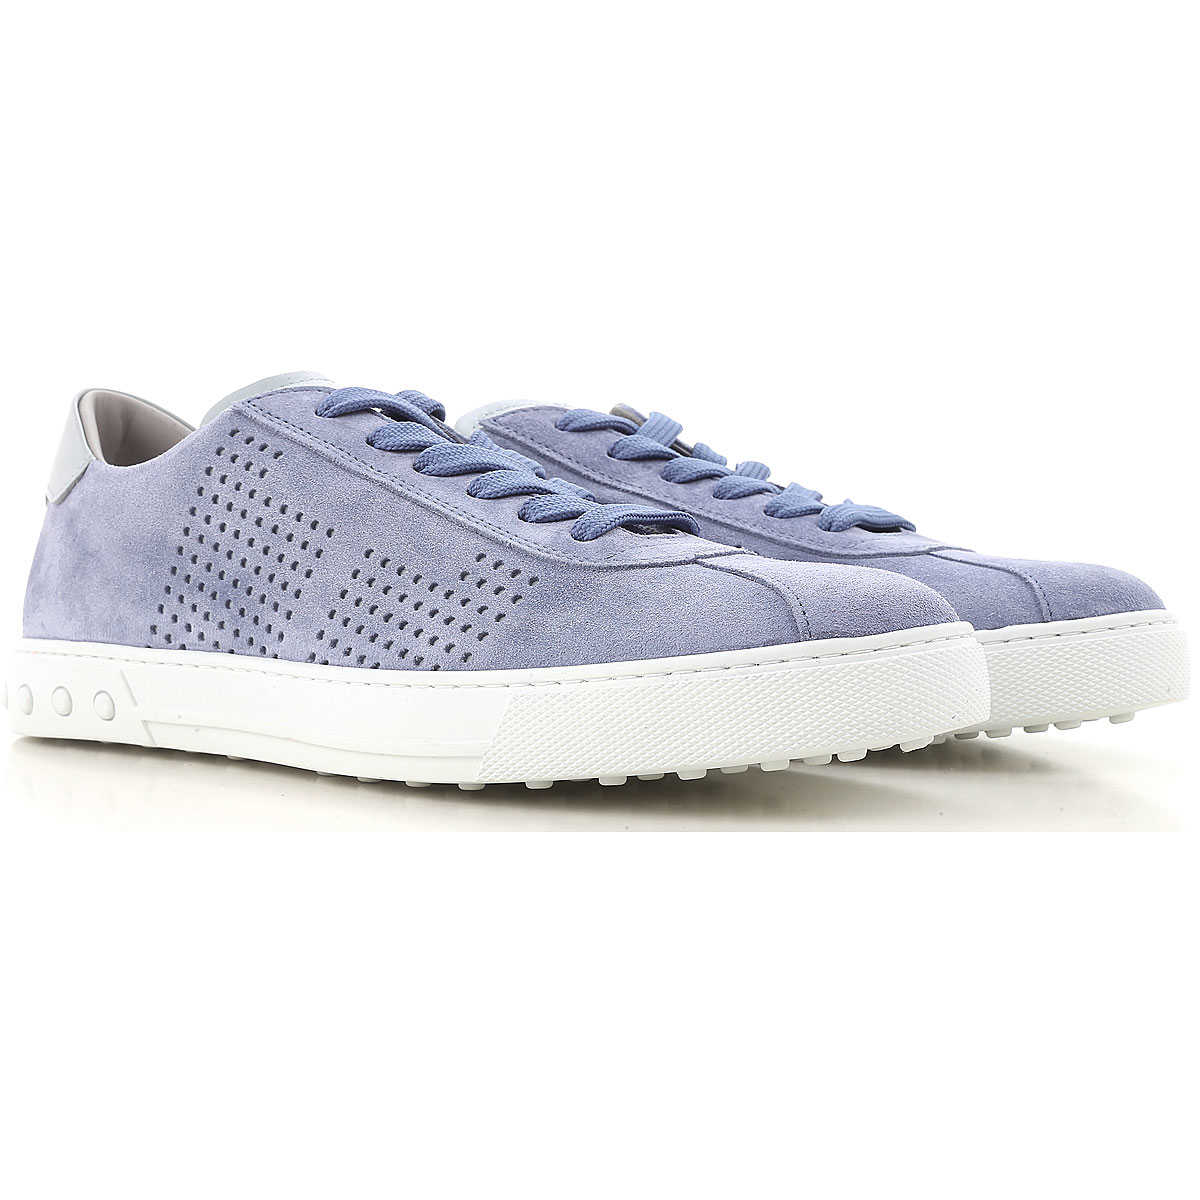 Tods Sneakers for Men On Sale